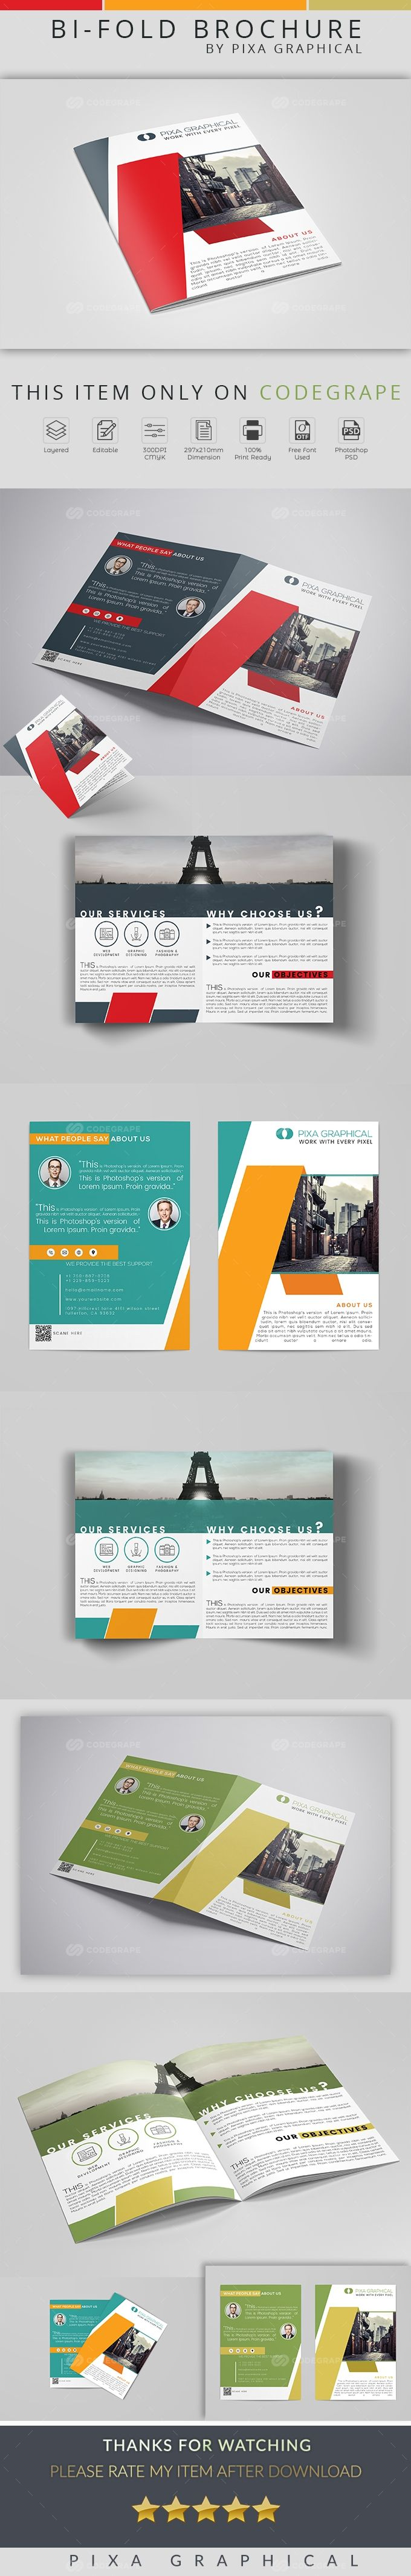 This is a Corporate Bi-Fold Brochure PSD Template. This template download contains- 300 dpi, print-ready, CMYK PSD files. All main elements are editable and customizable.These modern brochure is suitable for corporate and other branding use.